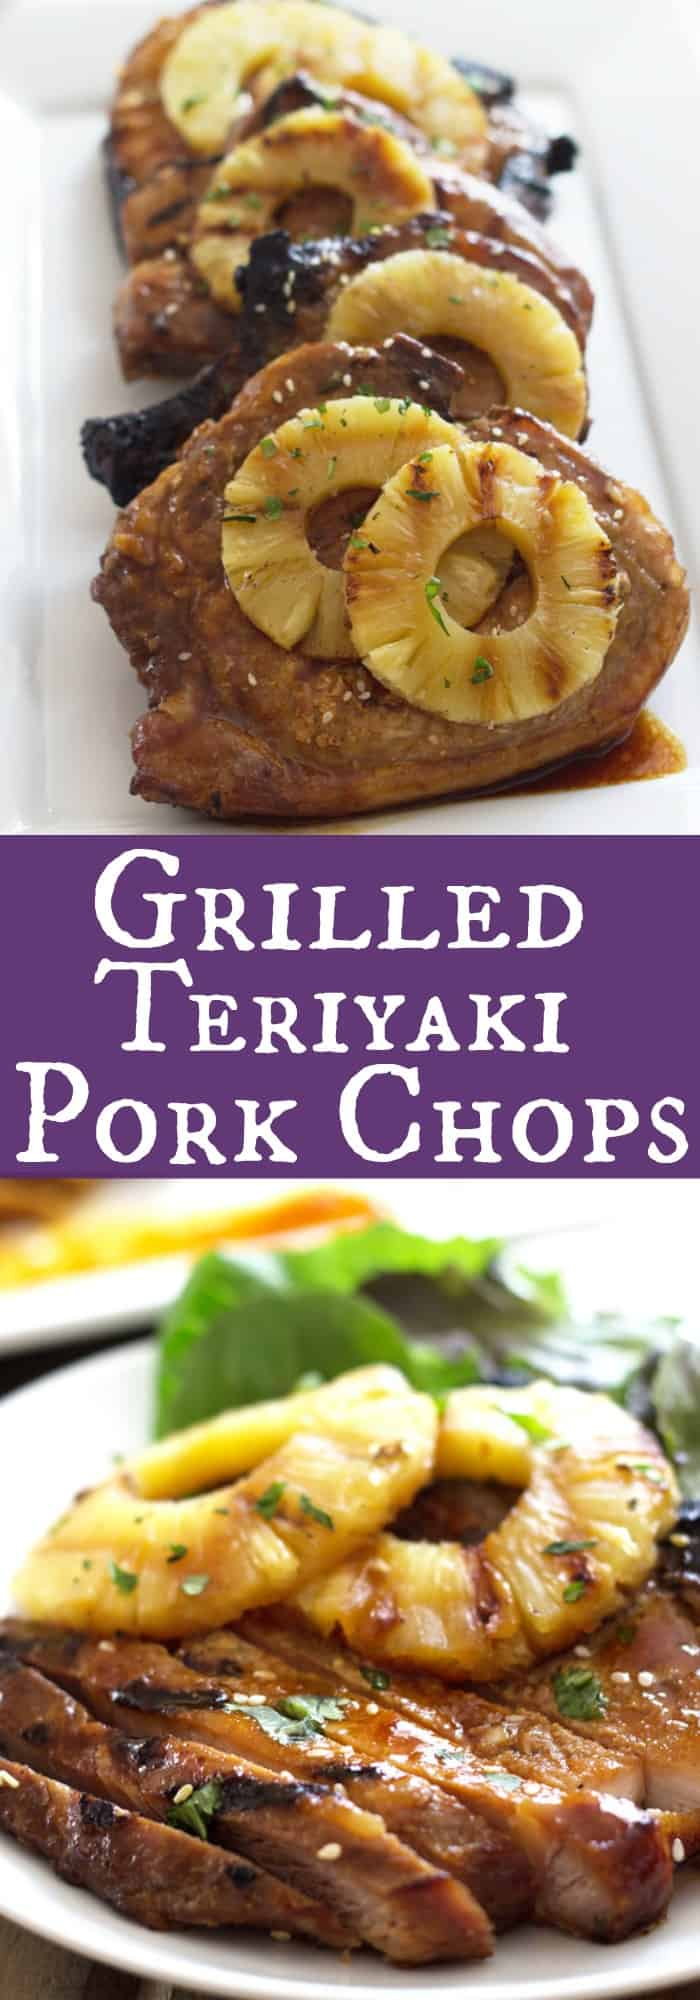 Grilled Teriyaki Pork Chops Pork Chops Marinated In A Simple Homemade Teriyaki Sauce Then Grilled